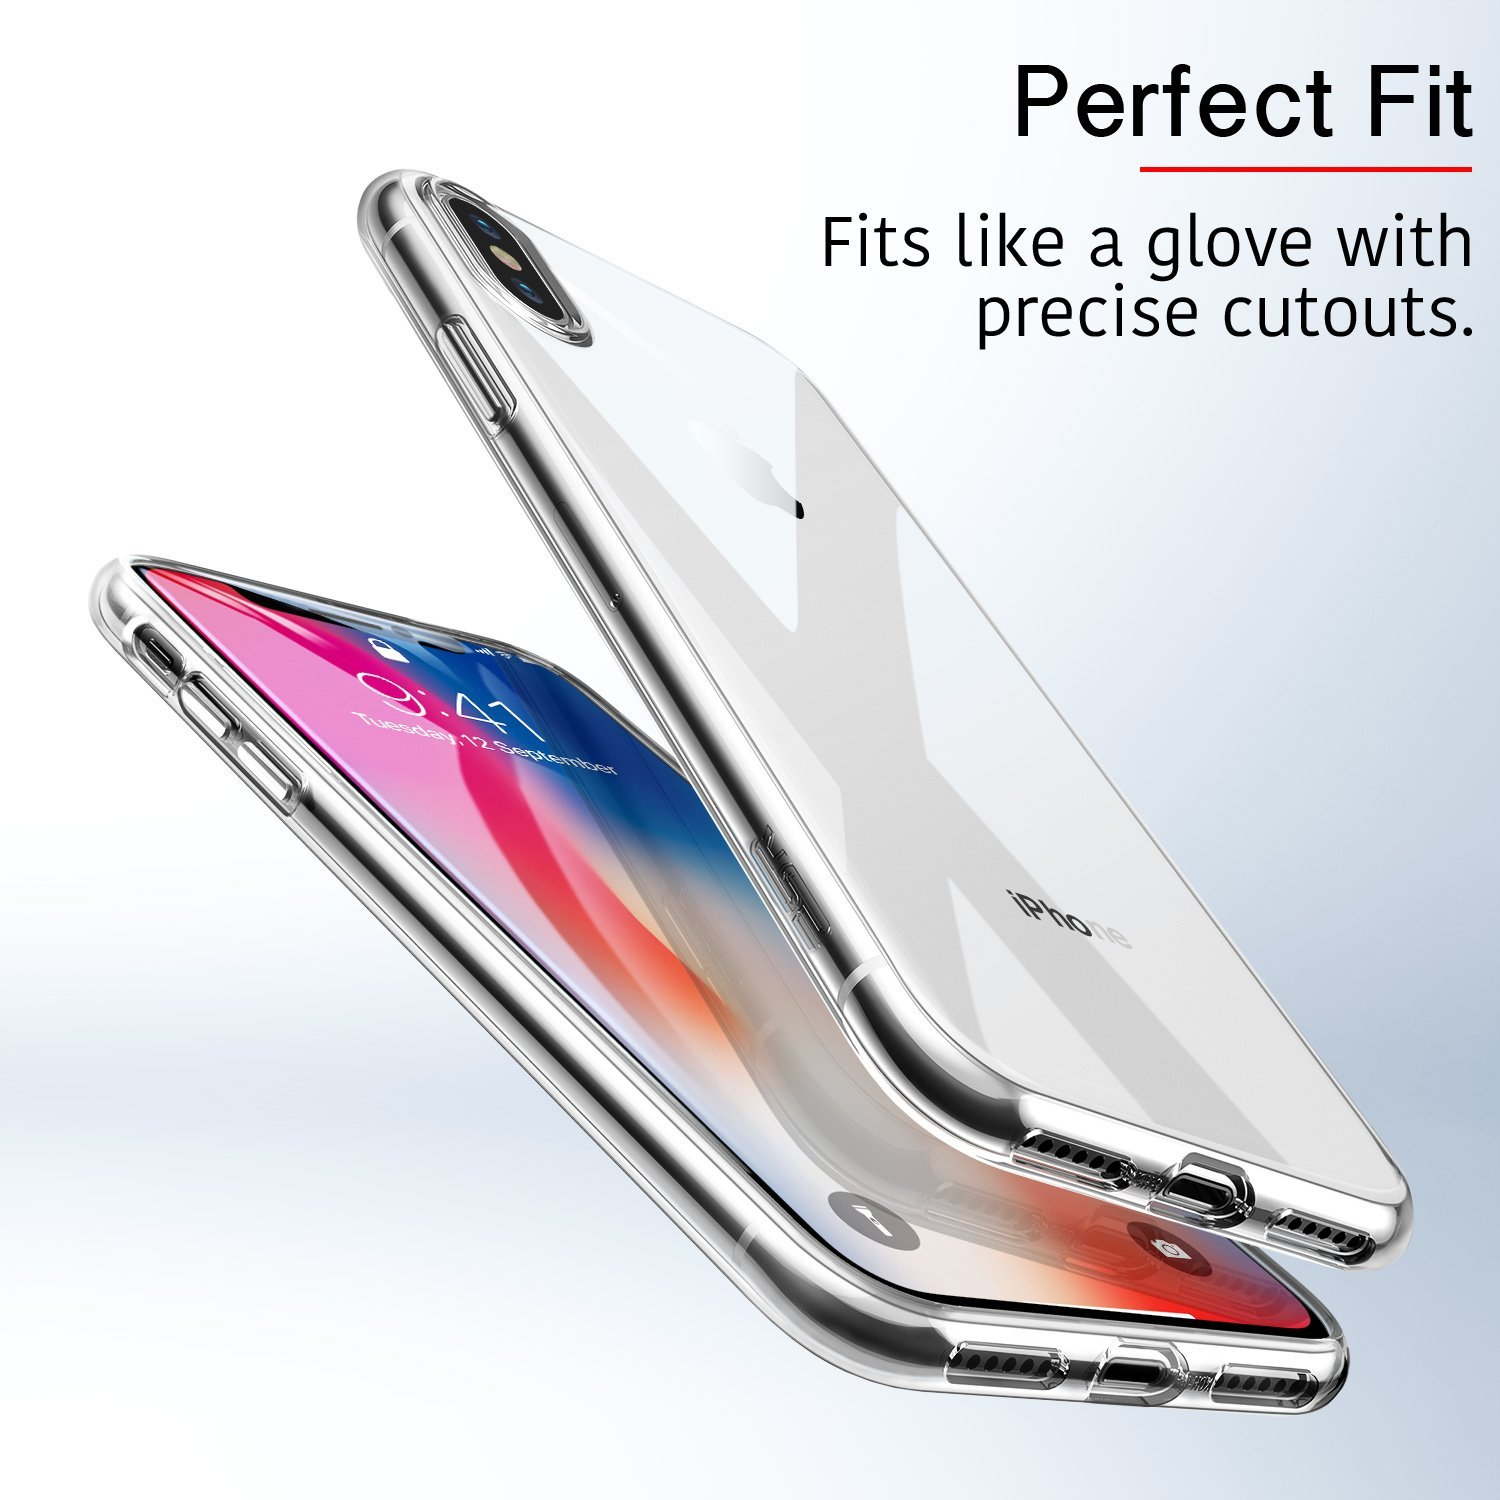 new products 8d95d d4cda Best new iPhone XS, XS Max and XR cases available now - 9to5Mac